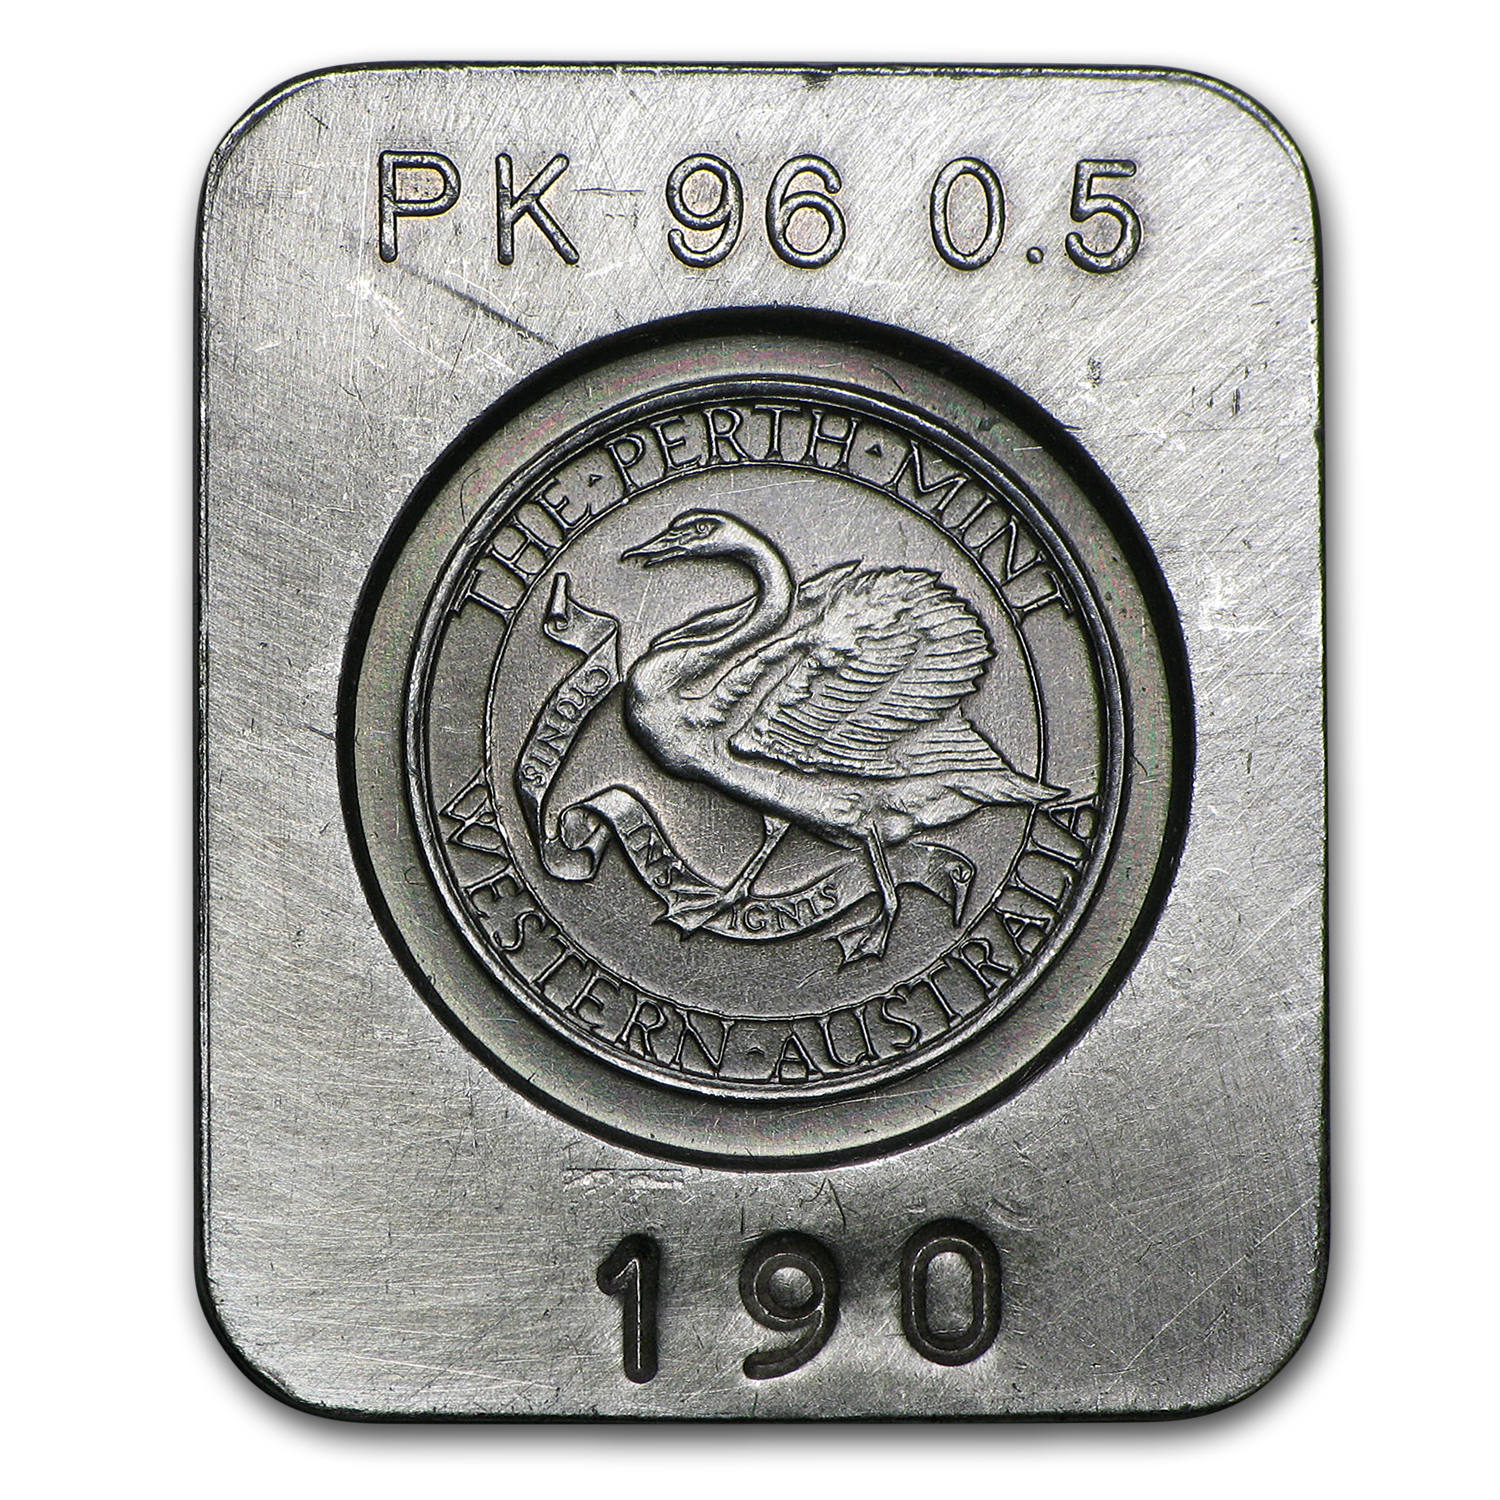 1996 1/2 oz Proof Australian Platinum Koala